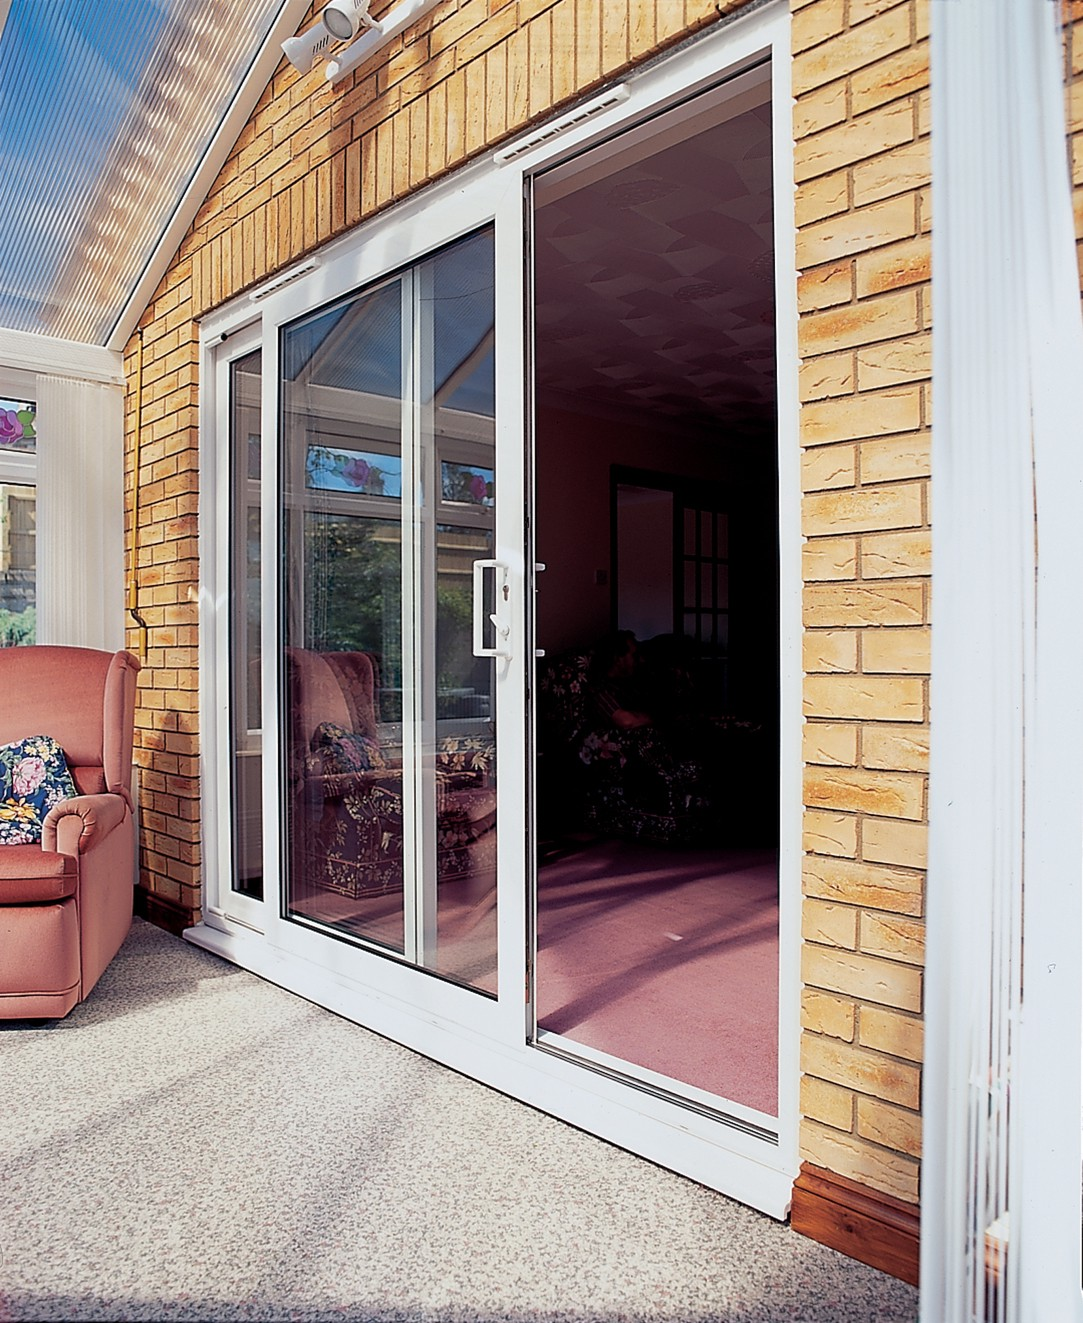 Patio slider doors examples, ideas & pictures megarct.com ju.